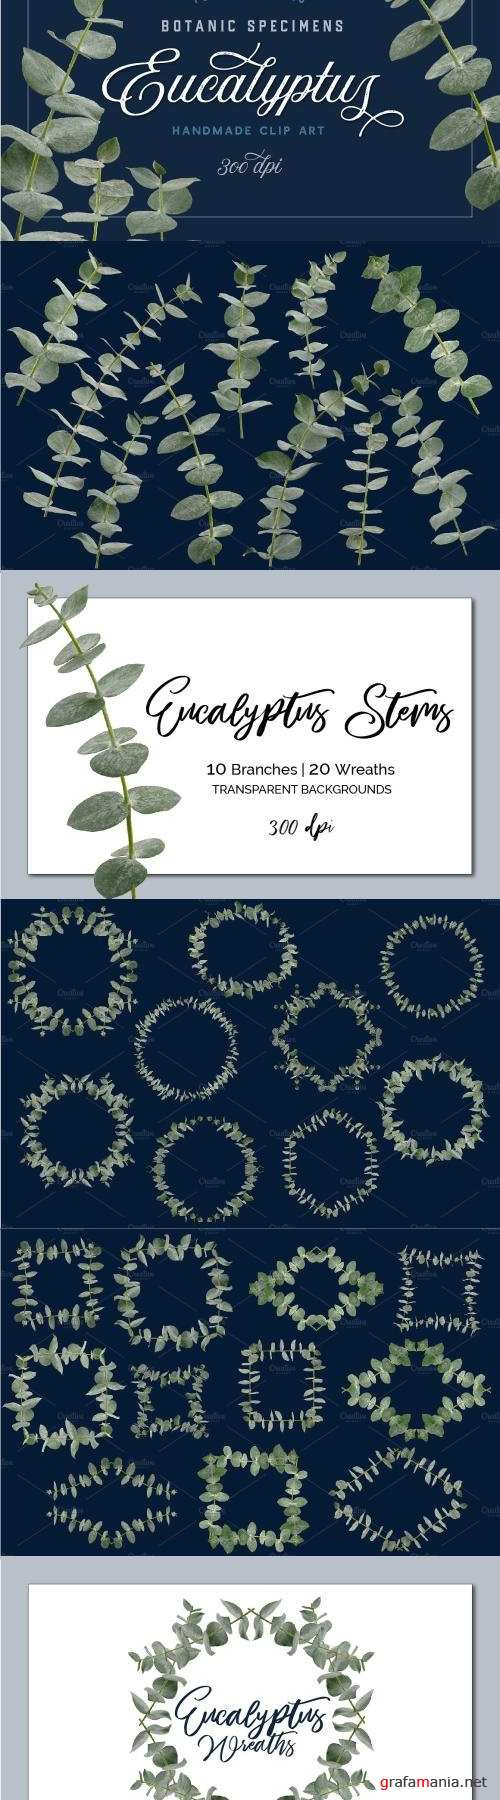 Eucalyptus Branches & Wreath ClipArt - 2250499